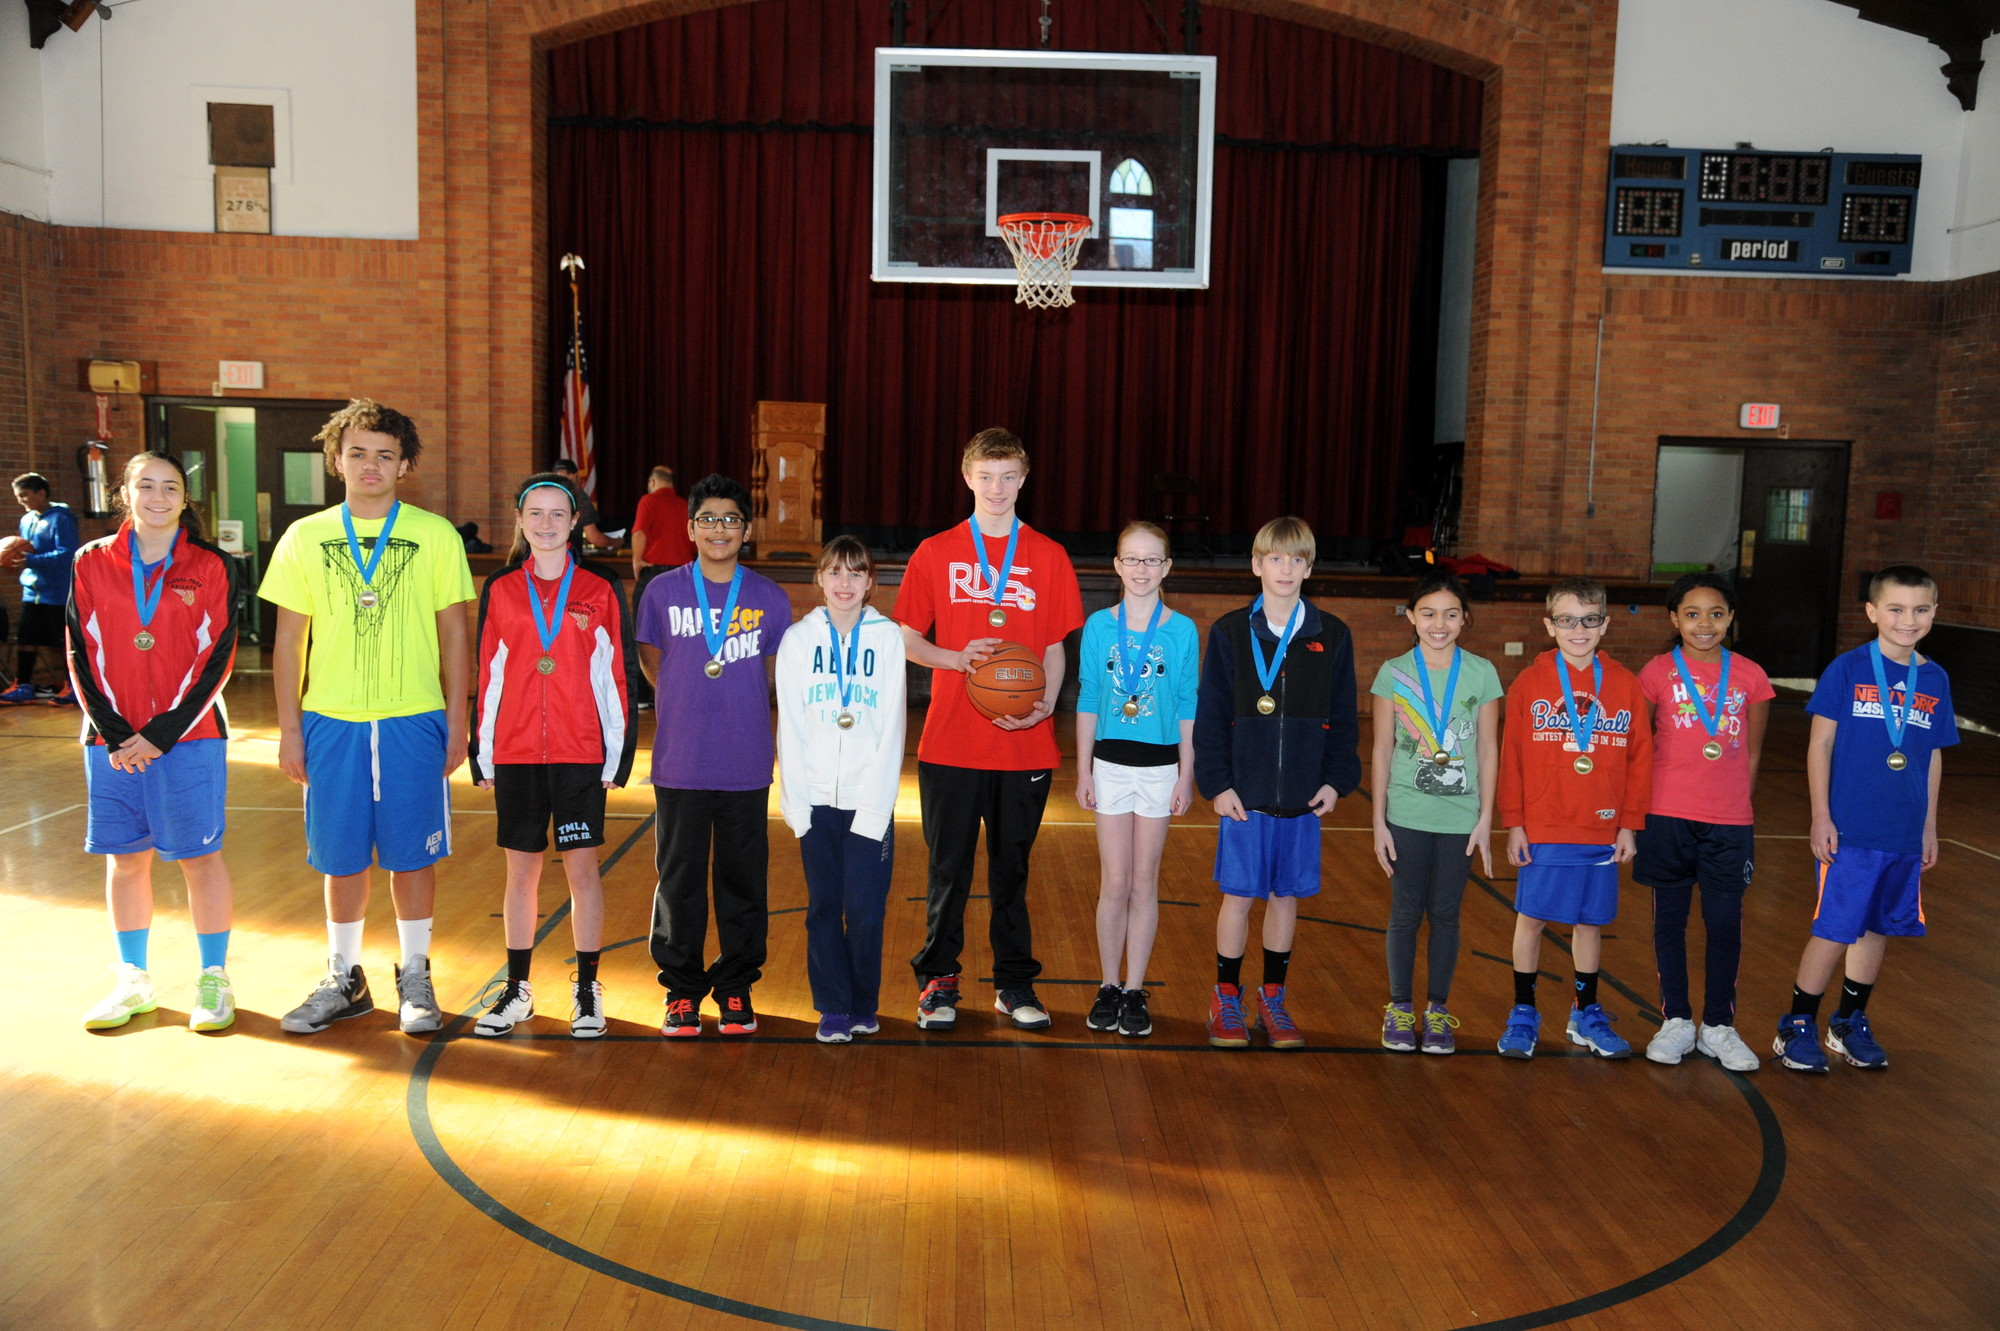 The winner in second second round of the Free-Throw Competition, from left, Danielle Devito, Tyler McCray, Maeve McGovern, Joel Thomas, Kate Grande, Bobby Bressmer, Rachel Wagner, Sean Colbert, Emily Saracino, Katherine Sinclair and Matthew Wallach.